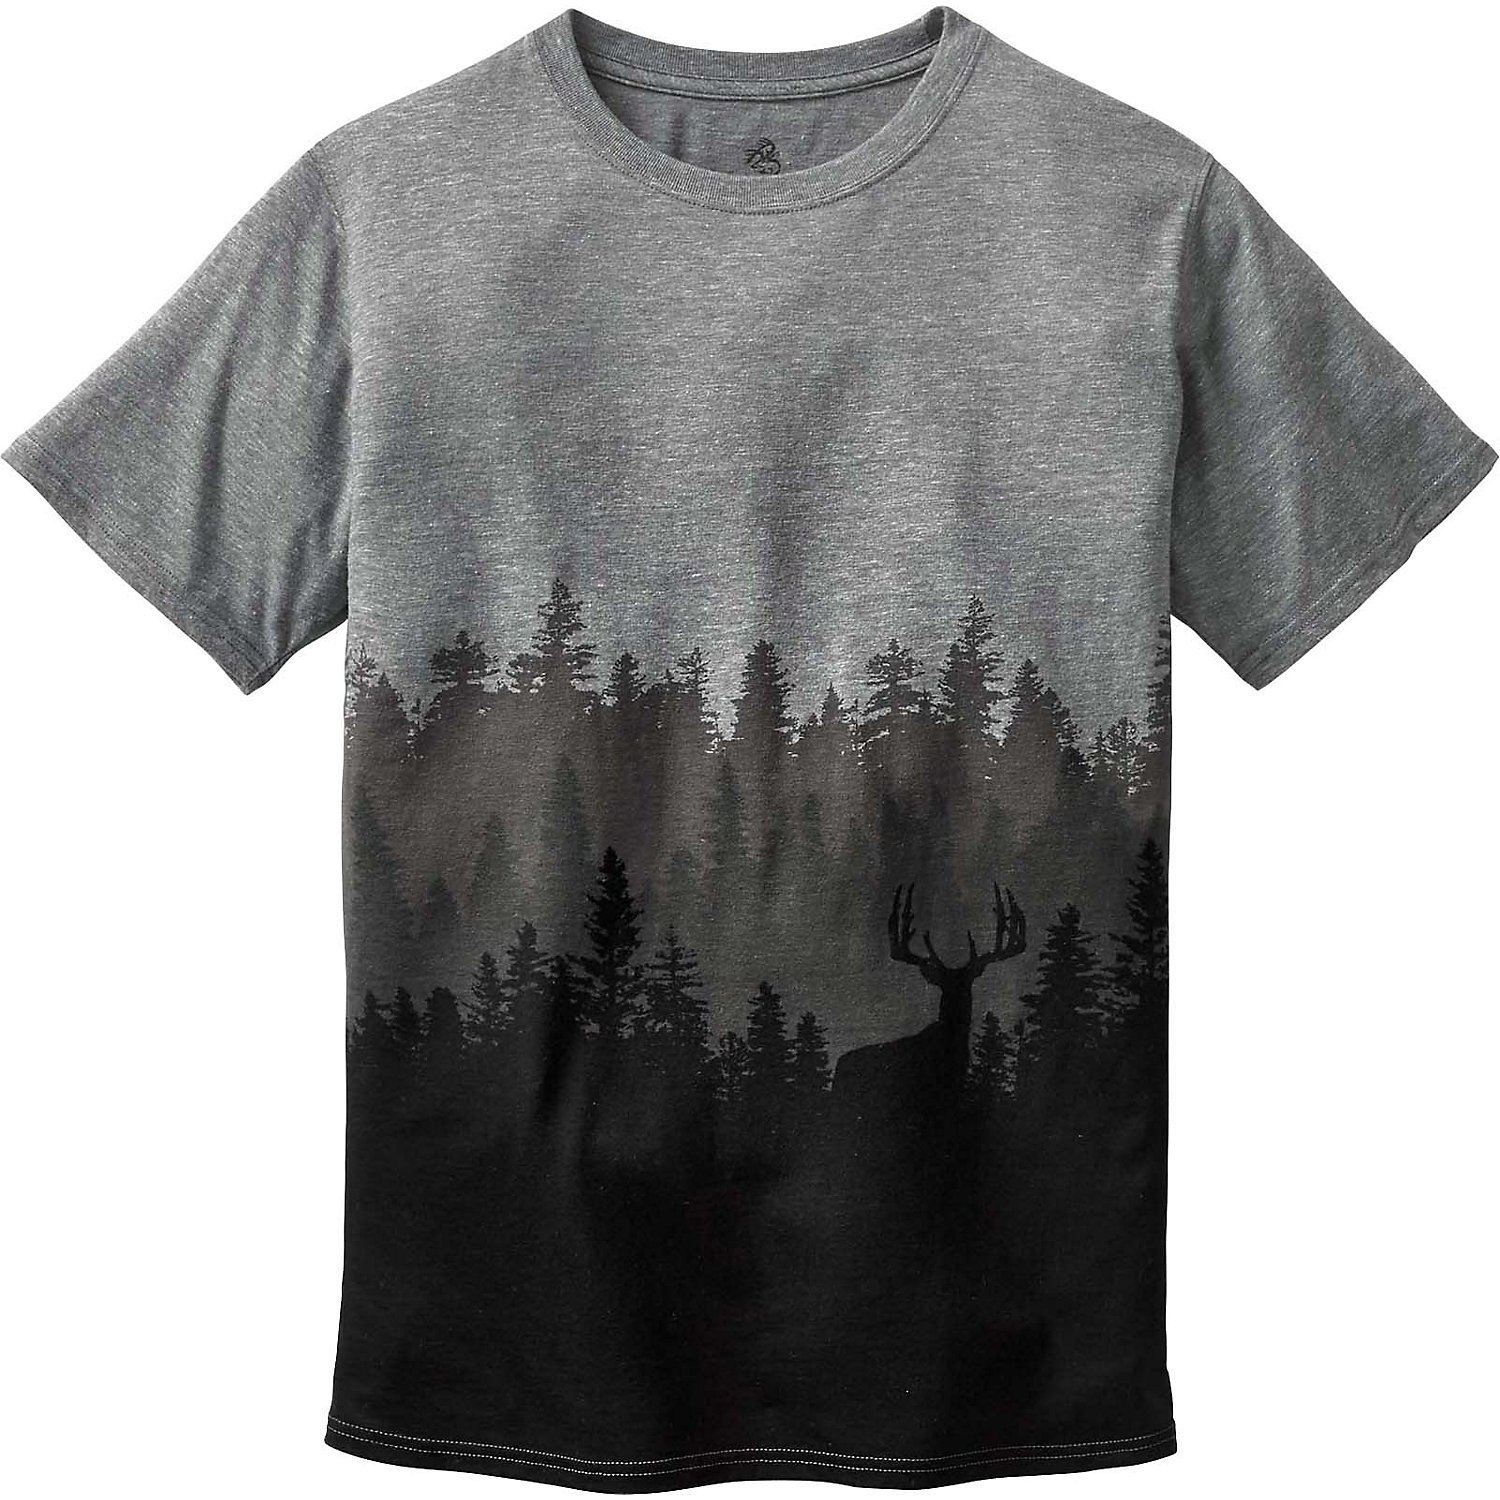 Legendary Whitetails Men's Timber Shadow Short Sleeve T-Shirt Graphite Heather Small